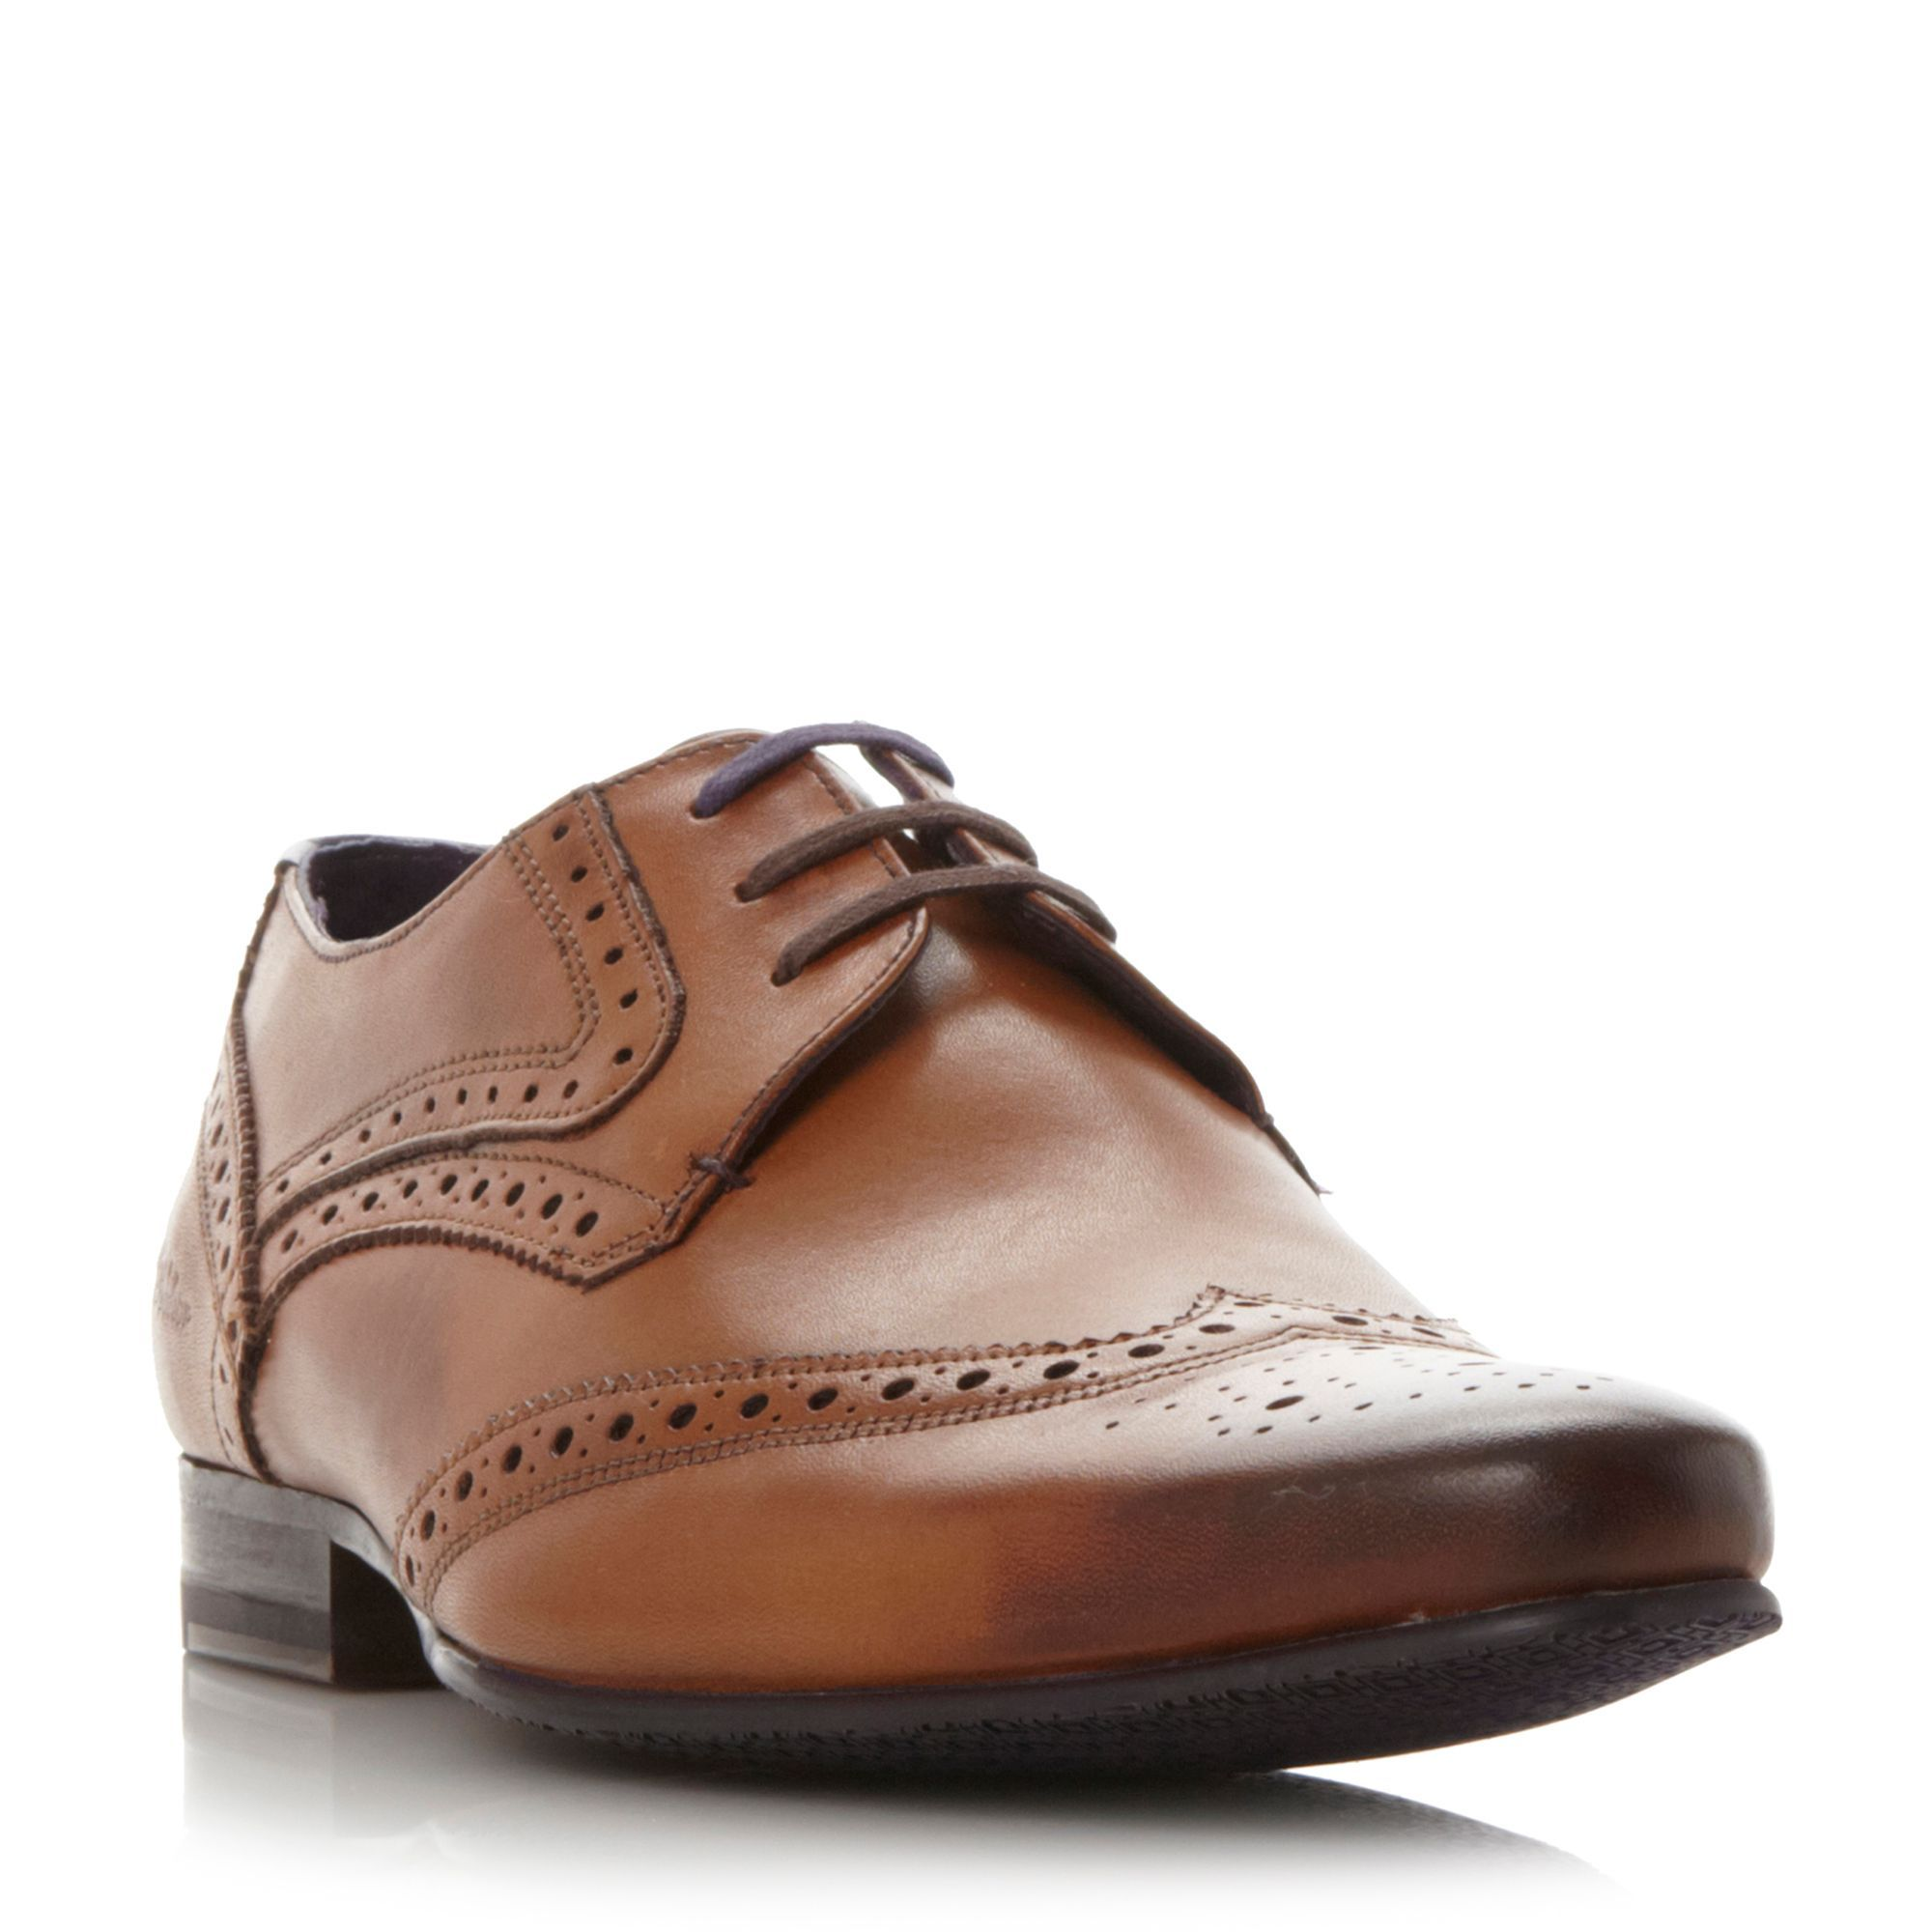 01e3506c703f Ted Baker Hann brogue lace up shoes